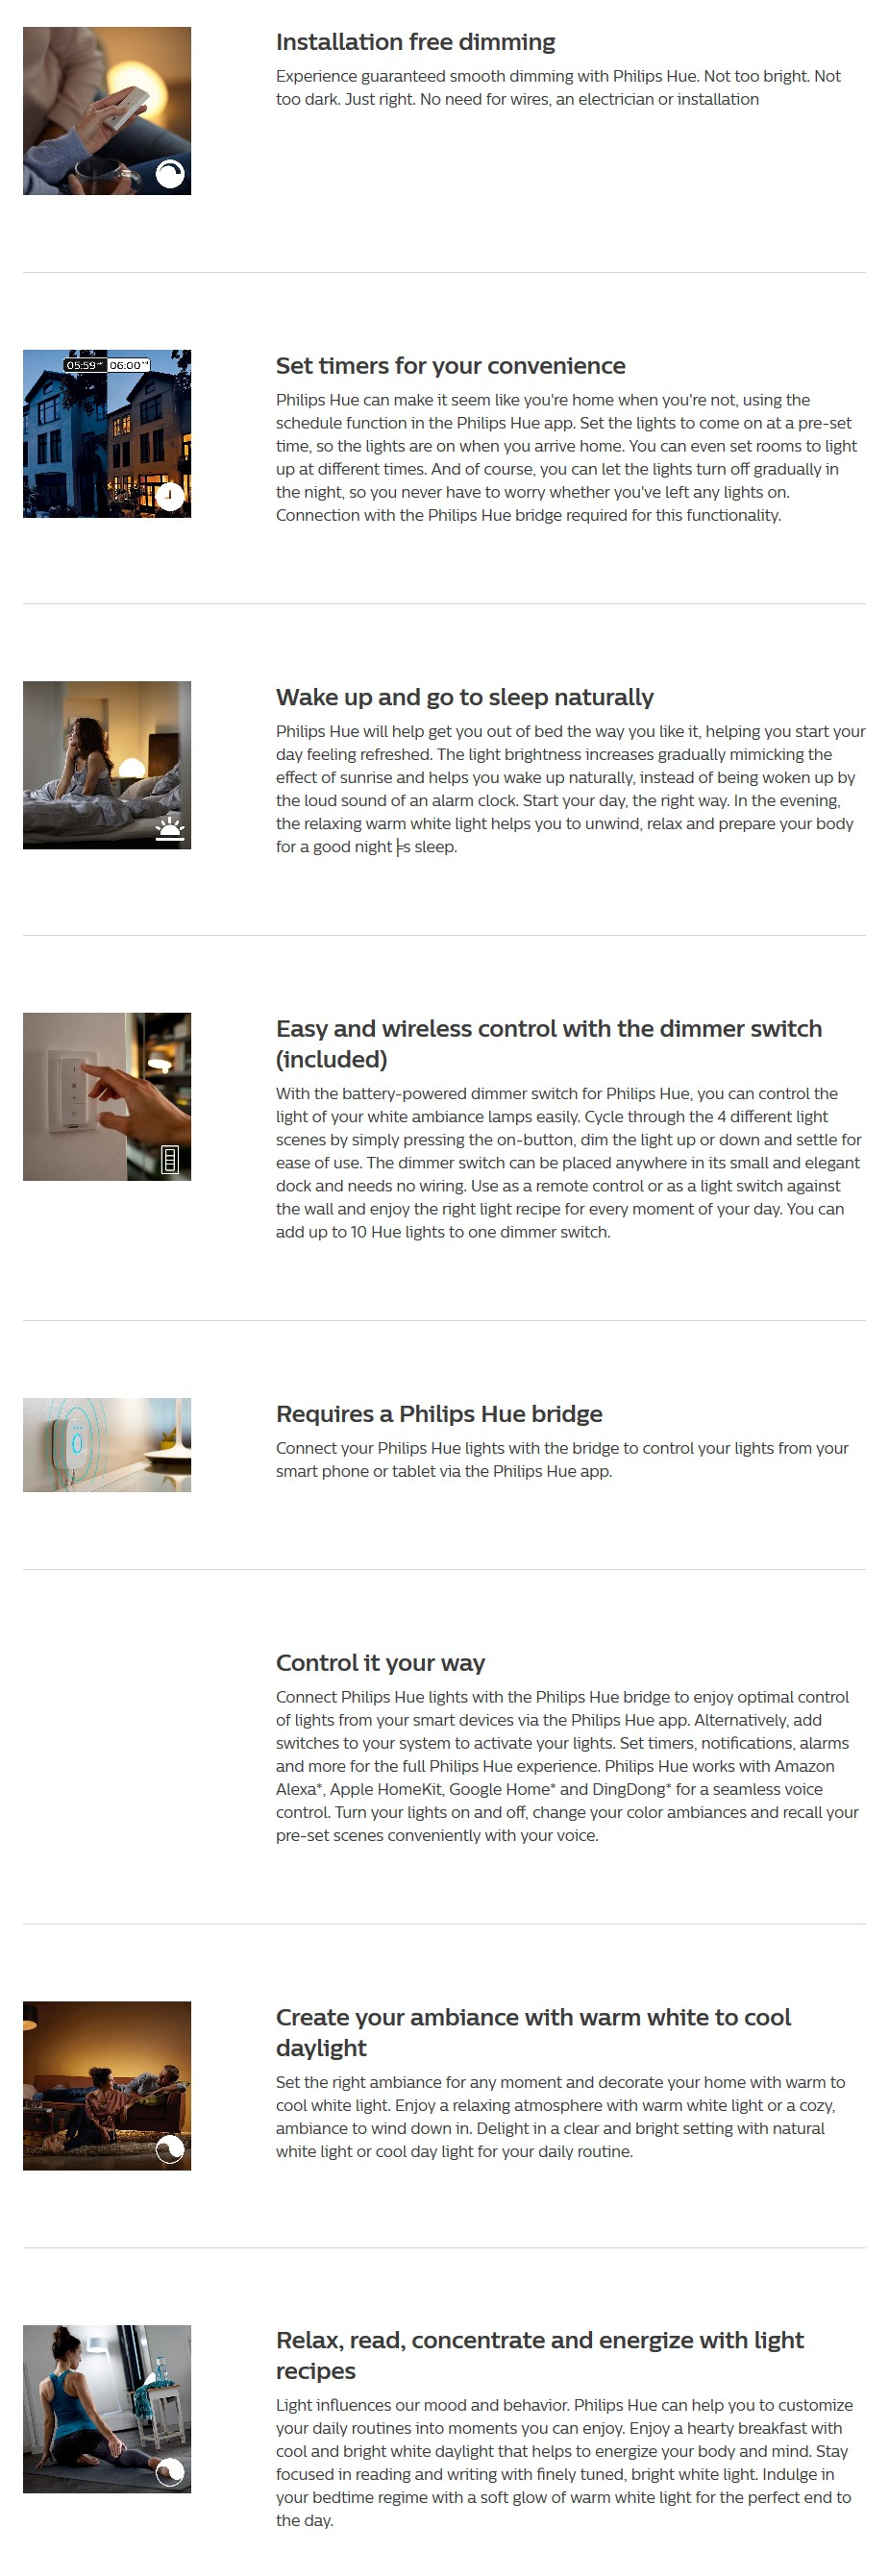 Philips Hue White Ambience Muscari LED Ceiling Pendant Light with Dimmer Switch - Desktop Overview 1